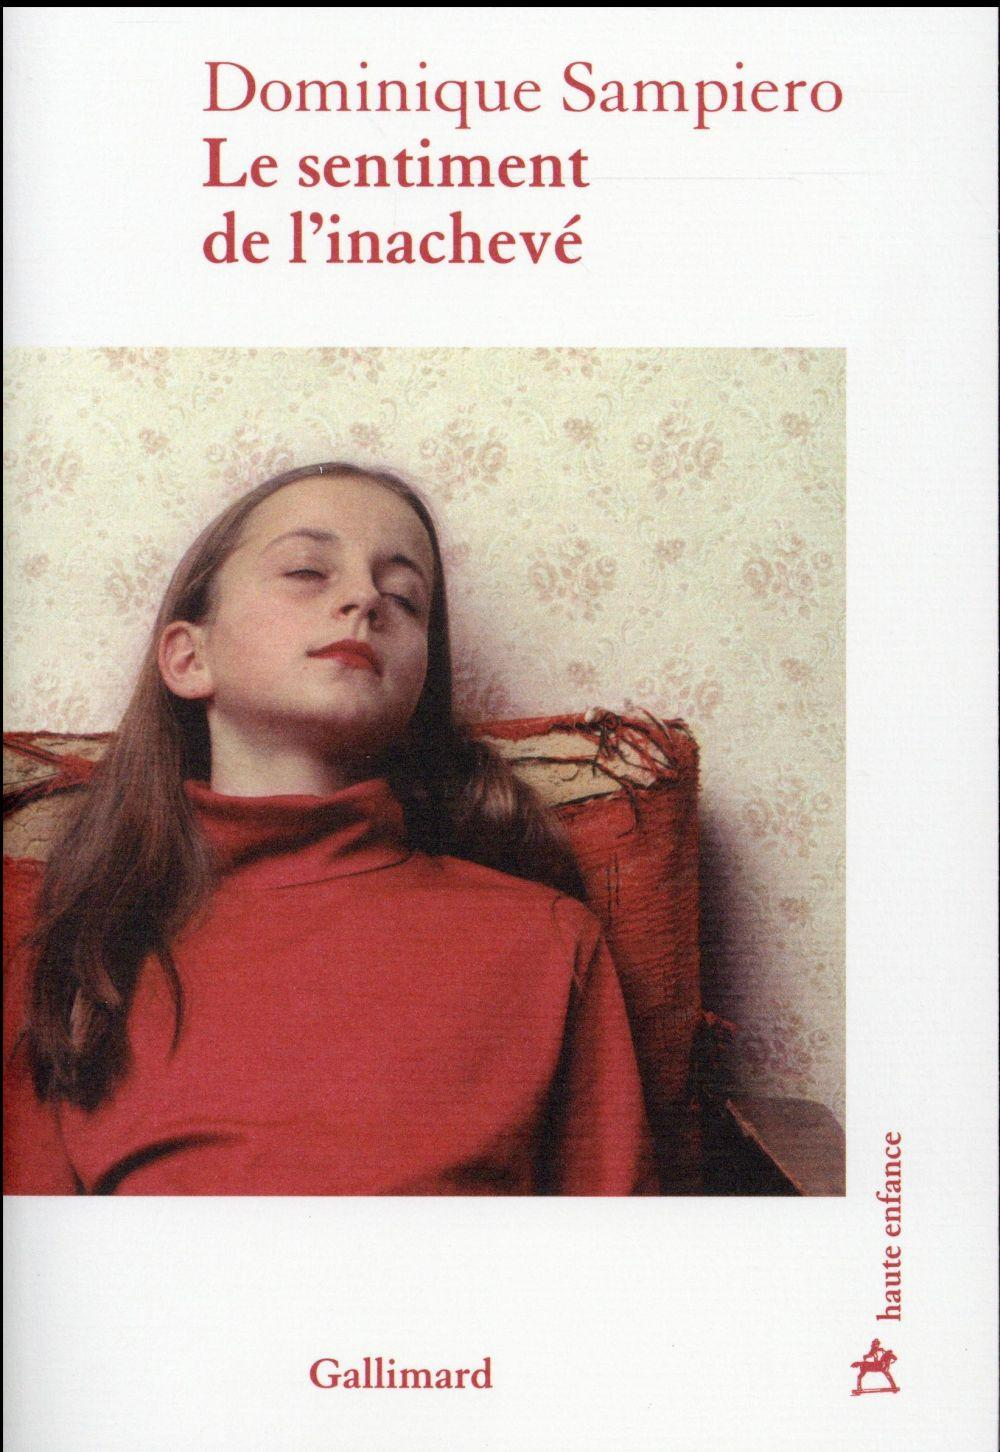 Le sentiment de l'inachevé  - Dominique Sampiero